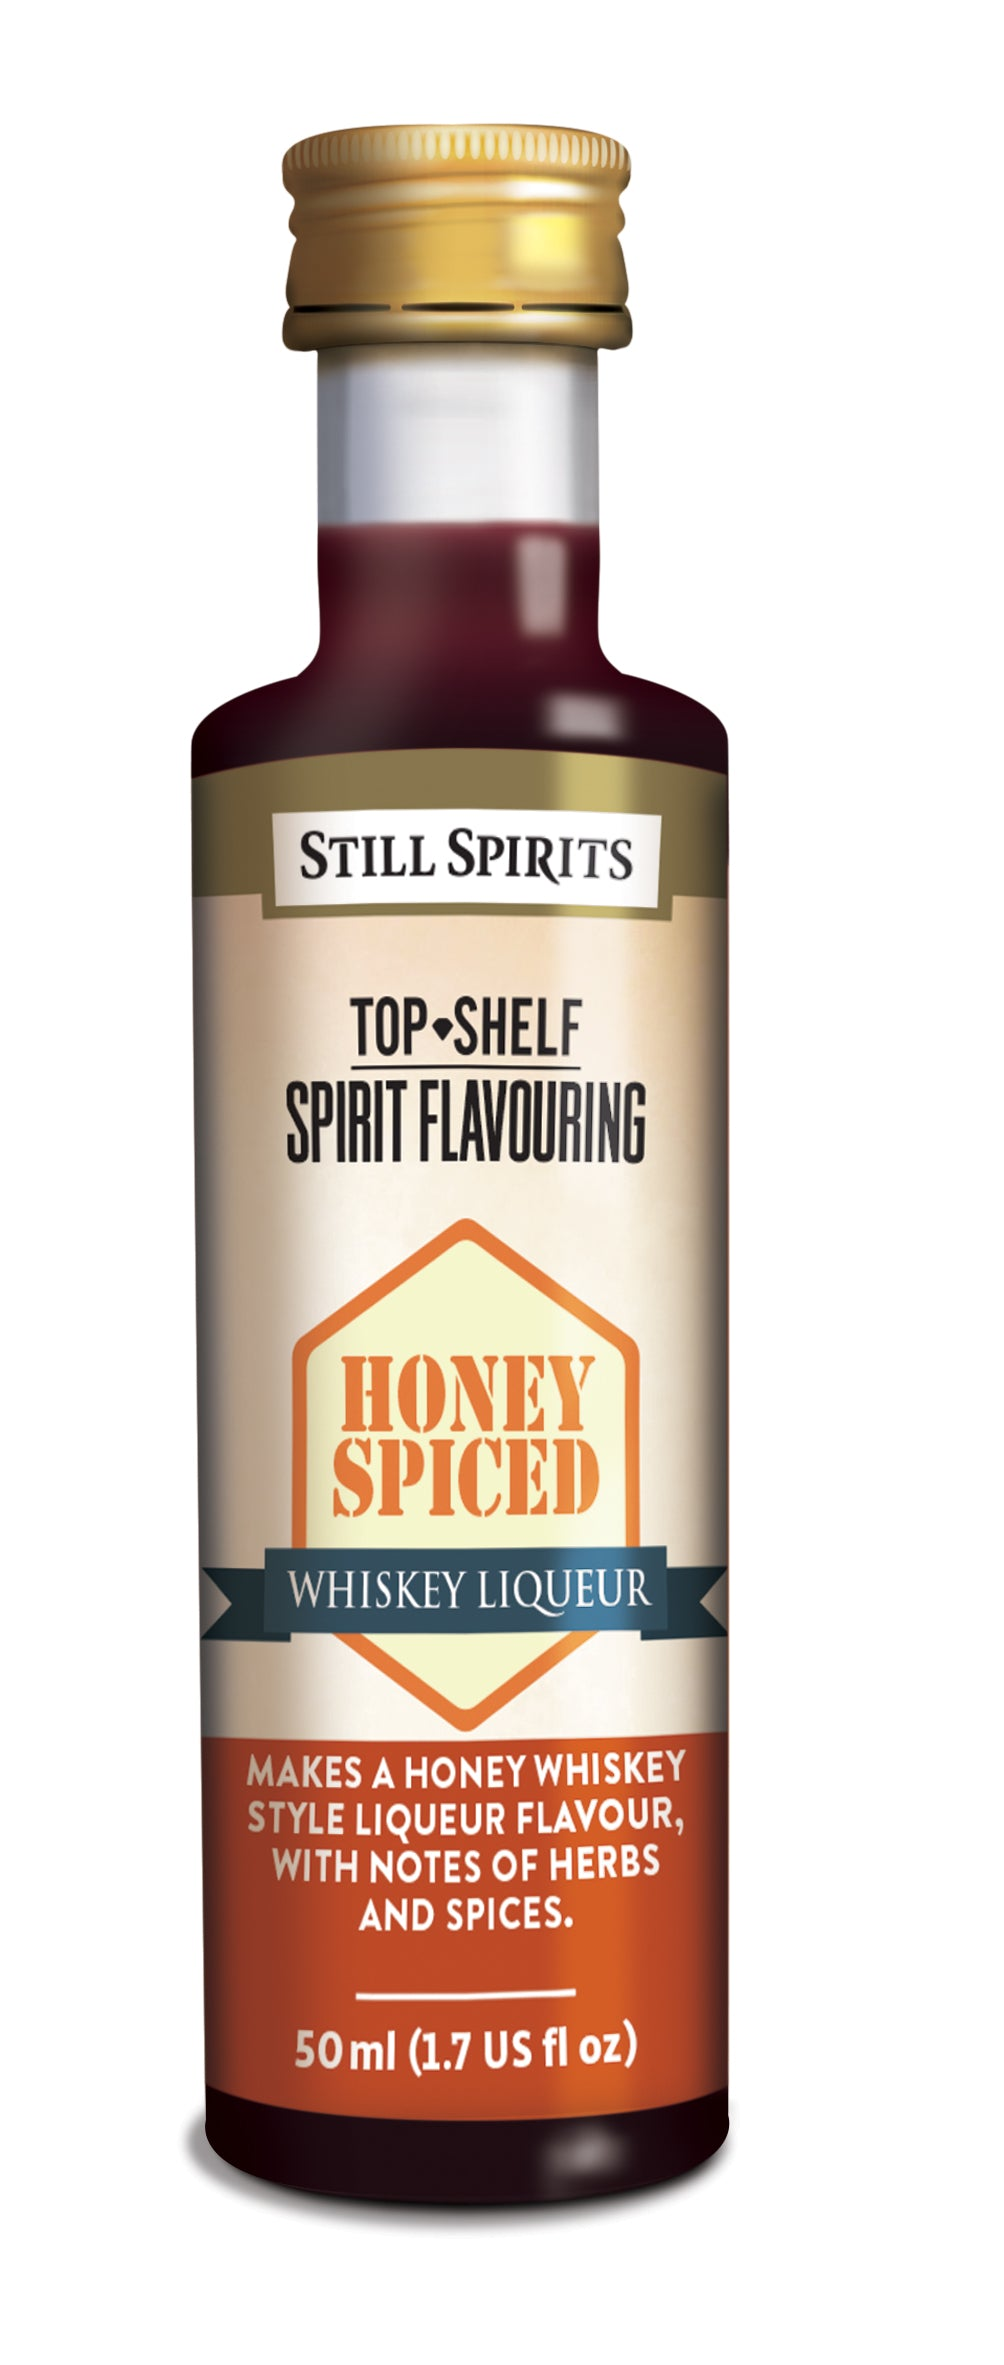 TOP SHELF HONEY SPICED WHISKEY LIQUEUR FLAVOURING